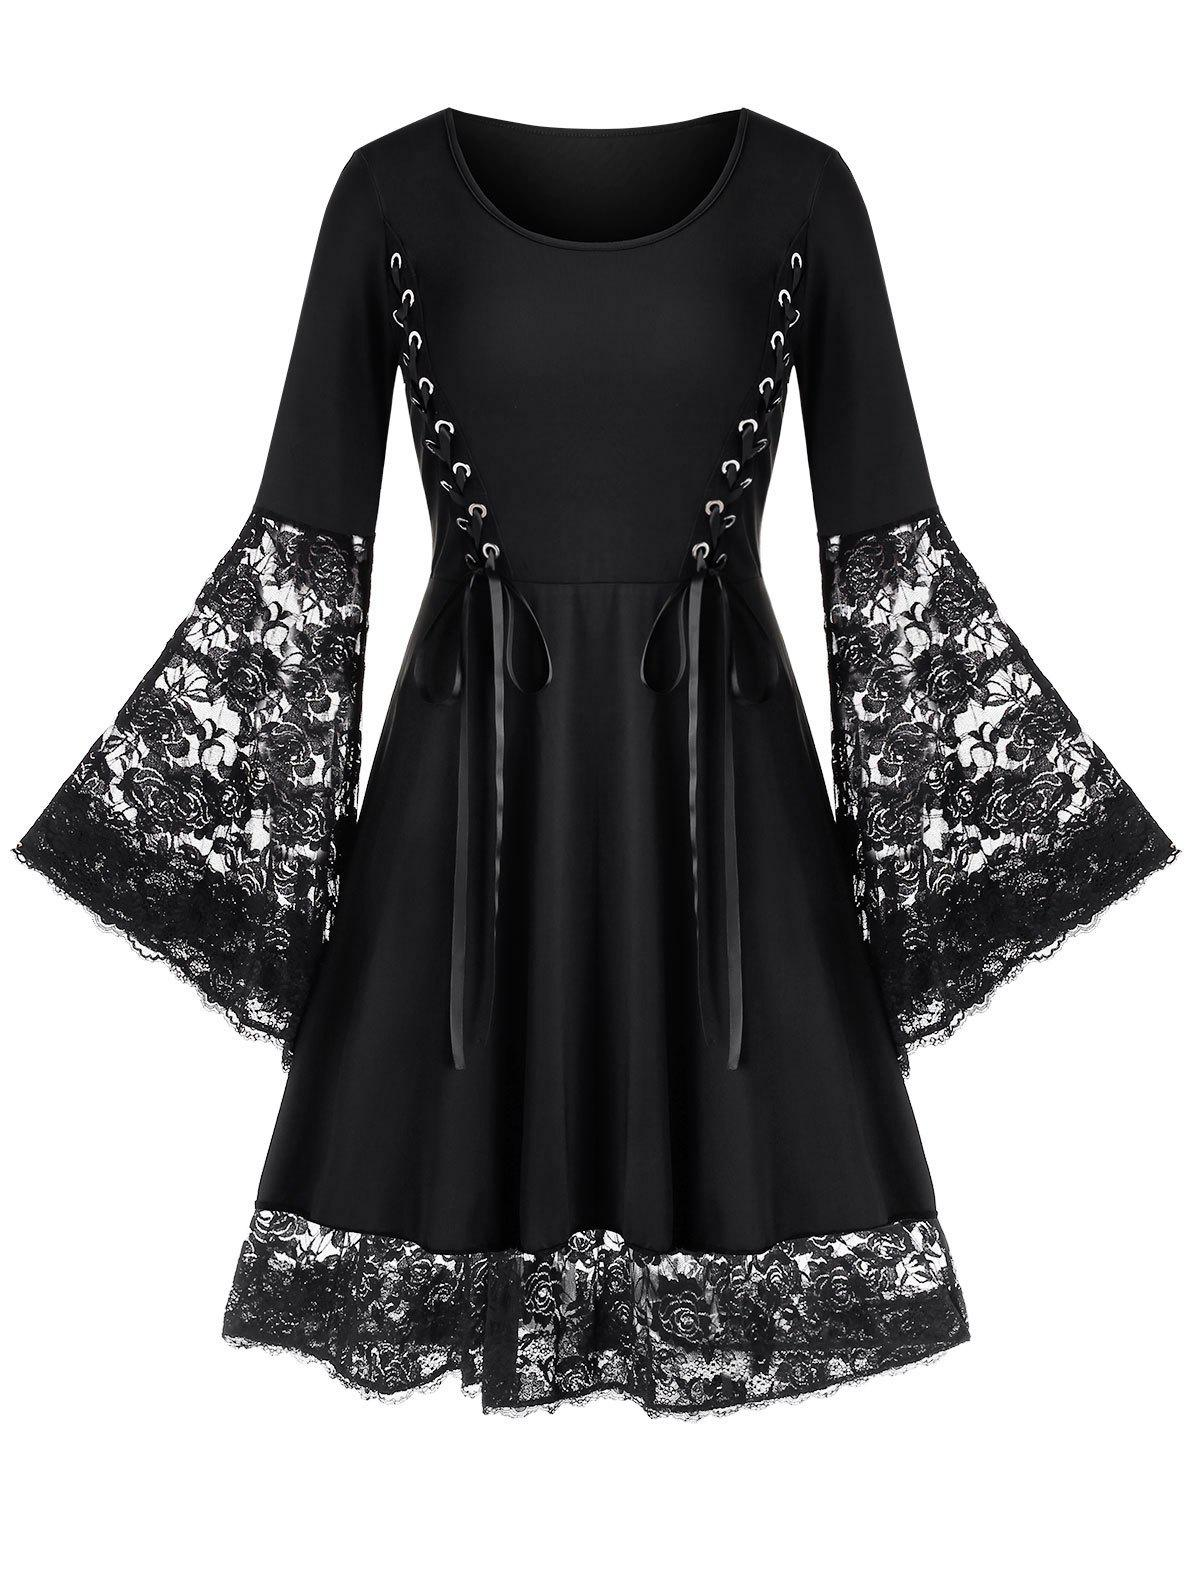 Plus Size Bell Sleeve Lace Up Flare Dress - BLACK L